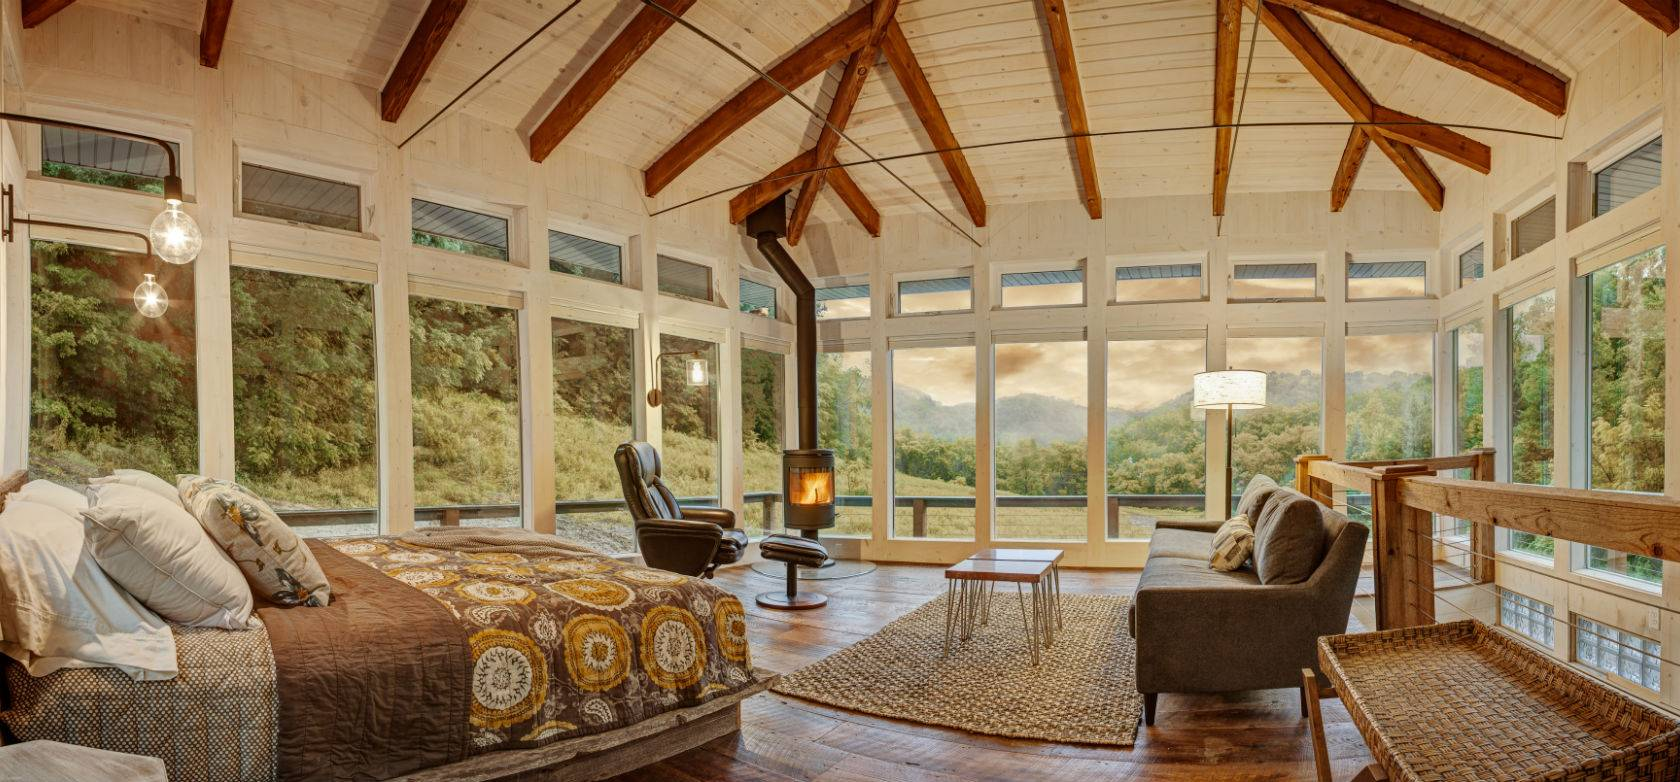 Candlewood Cabins - Meadow House Interior